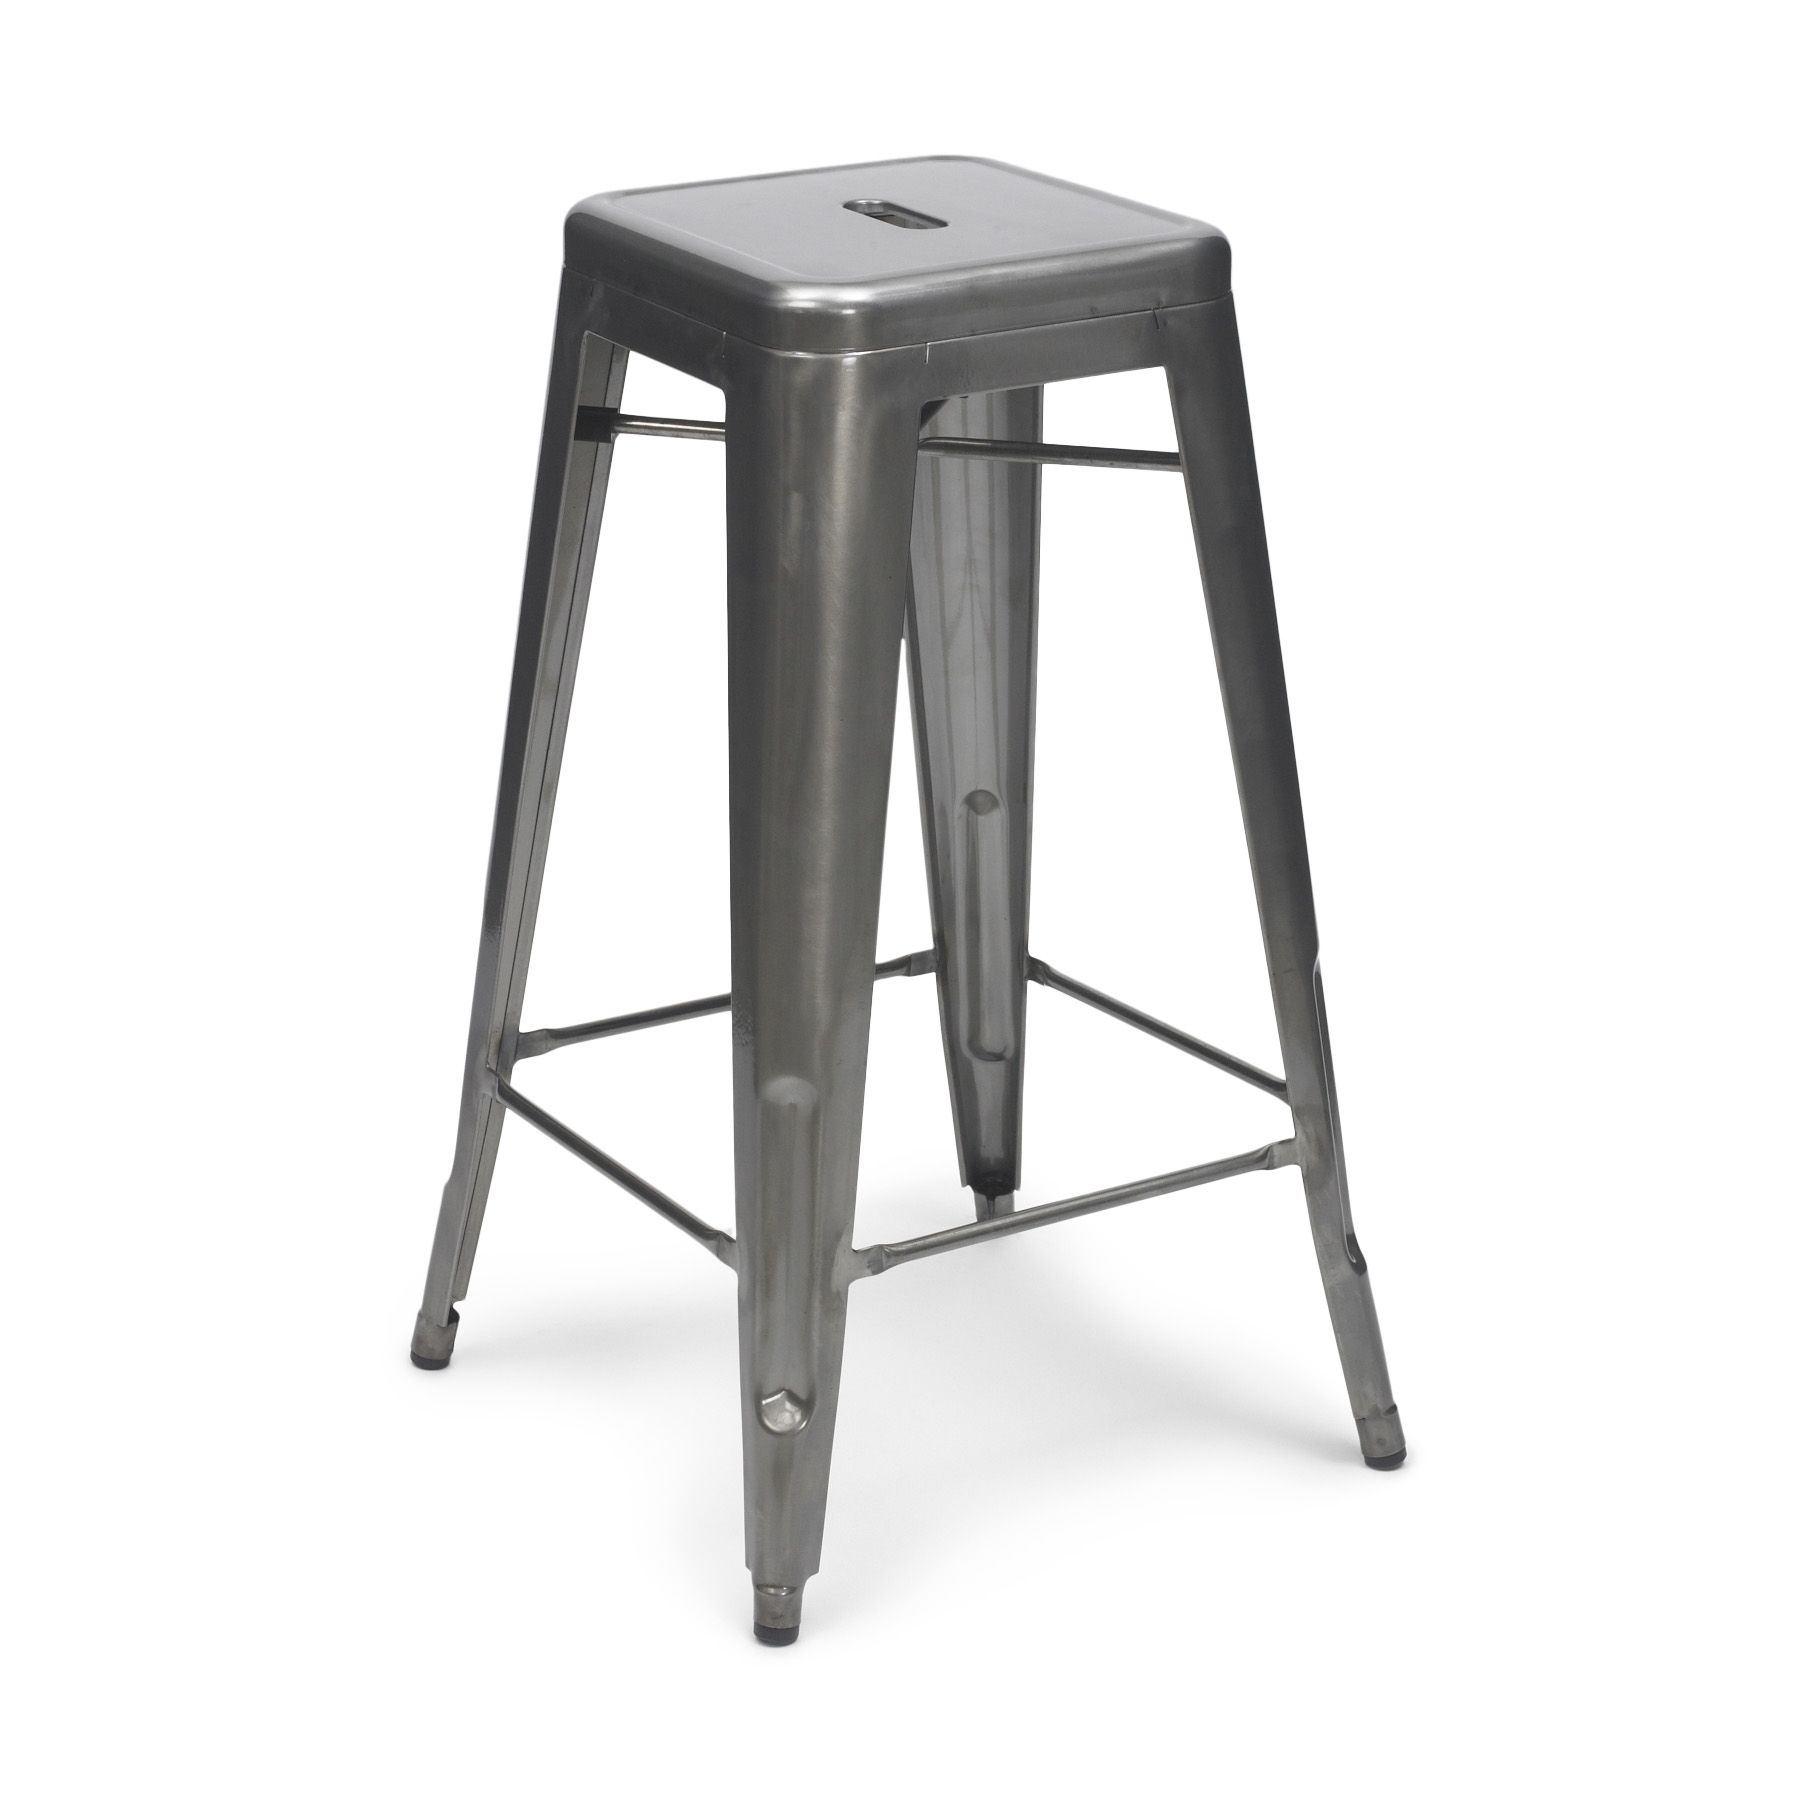 Super Gun Metal Tolix Stool (65cm/75cm) | Metal Stools LOVE  JJ49